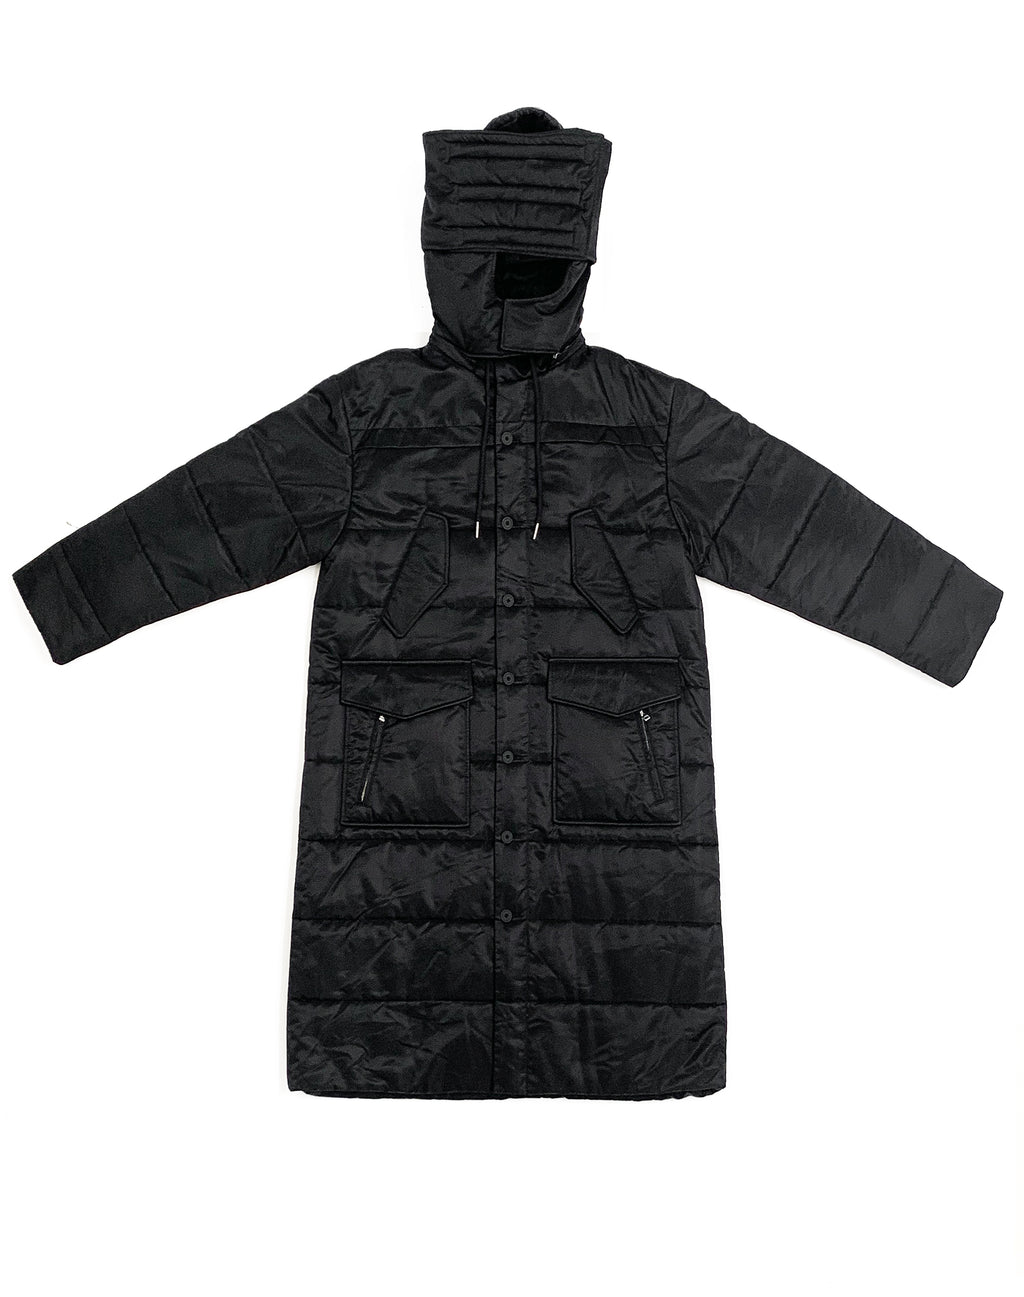 HELMUT LANG LONG BLACK PUFFER JACKET